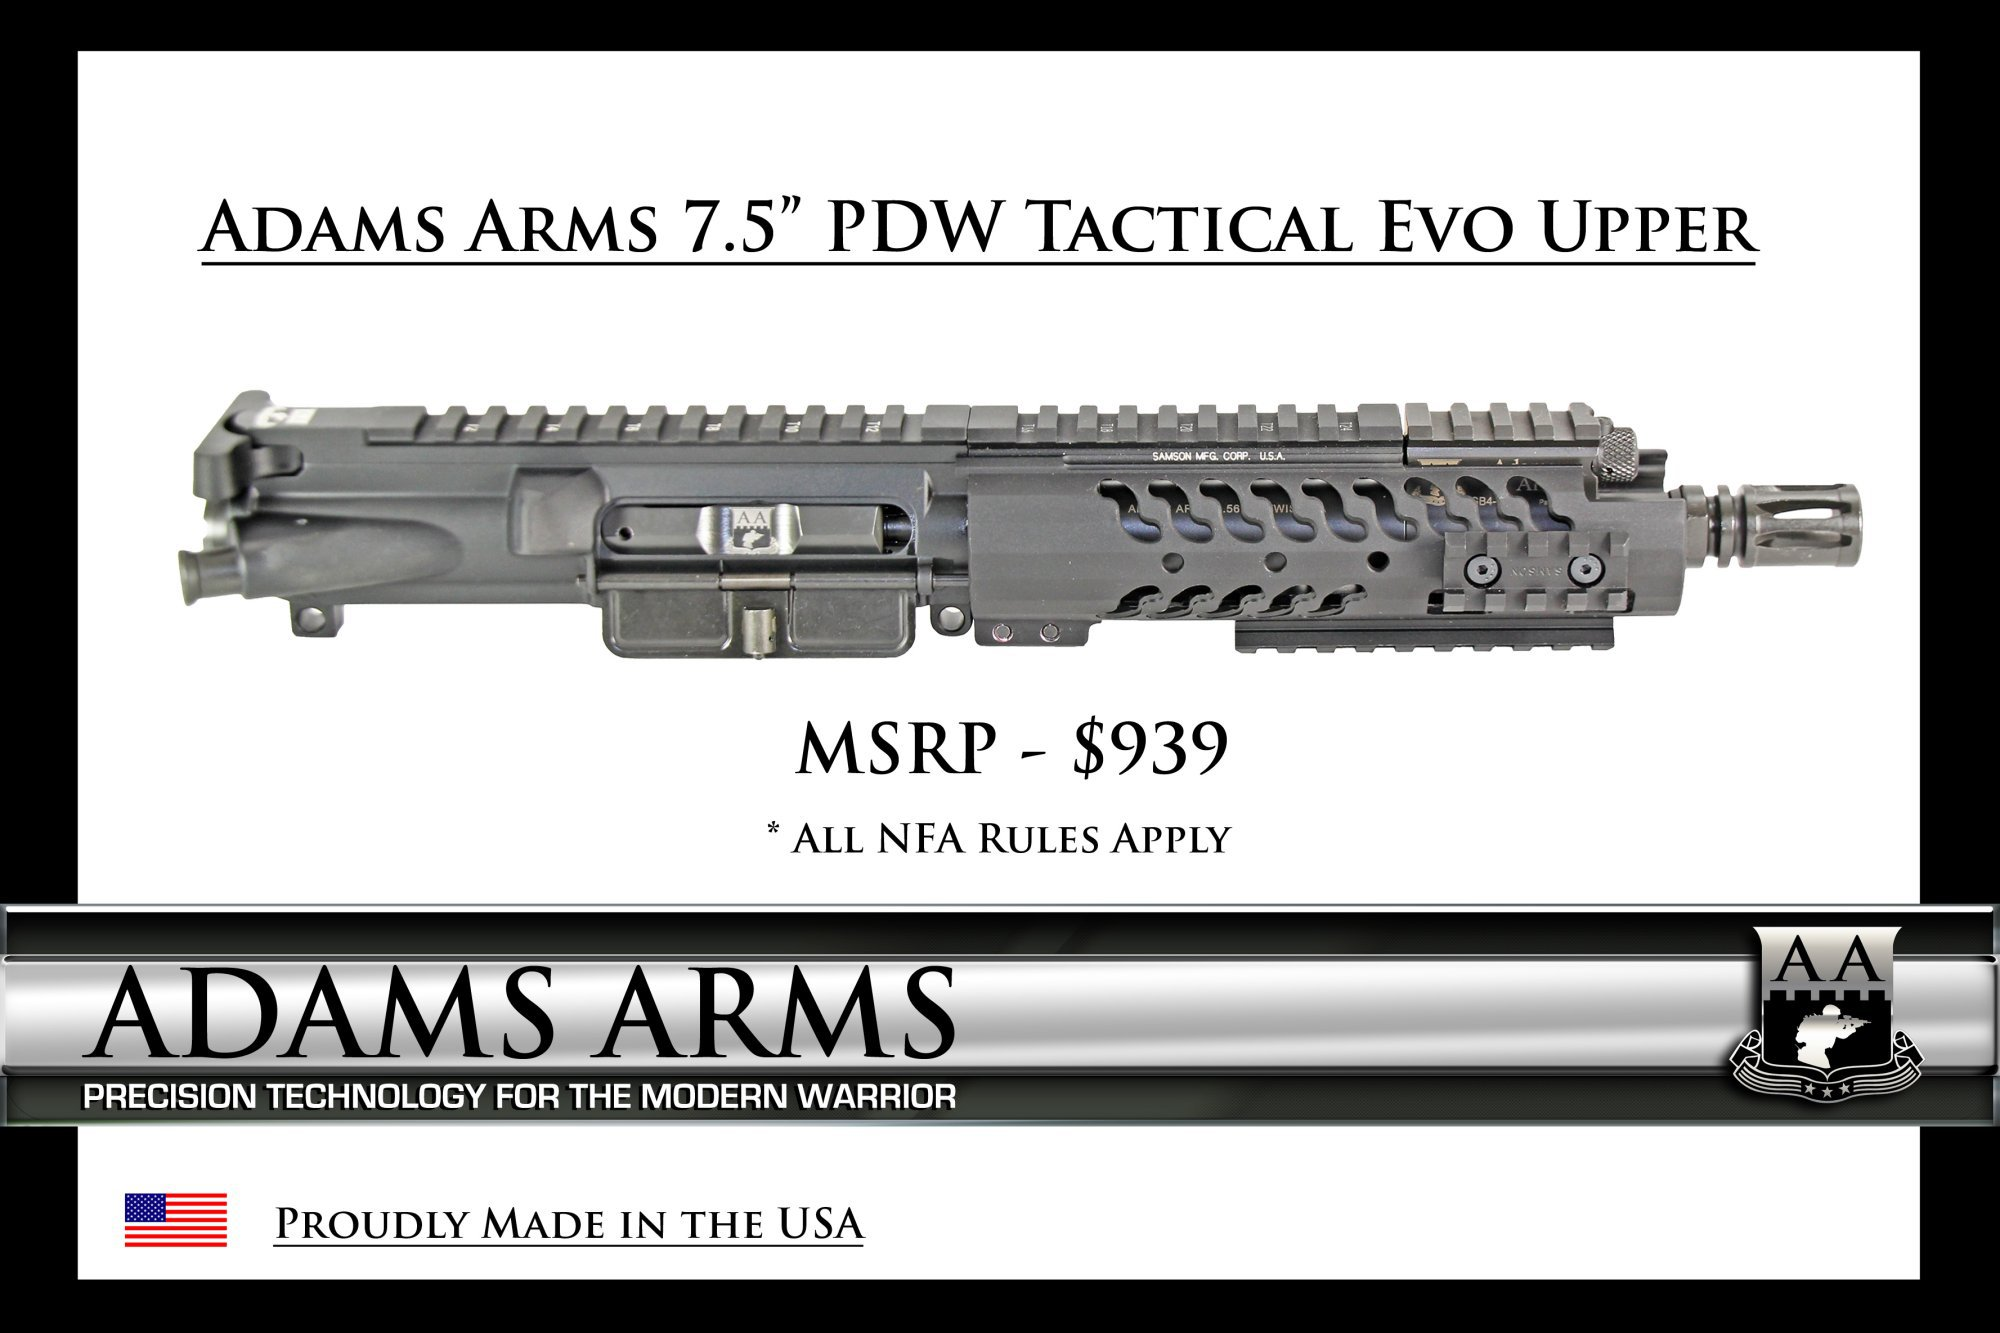 Adams Arms AA 7.5 inch PDW Tactical Evo Piston AR Upper Receiver Tactical AR SBR Upper 1 Adams Arms (AA) Tactical Evo Piston AR (AR 15/M16 Rifle / M4/M4A1 Carbine) Uppers (Upper Receivers) with Samson Evolution Rail System/Tactical Handguards for Martial Combat and Tactical Training (Videos!)